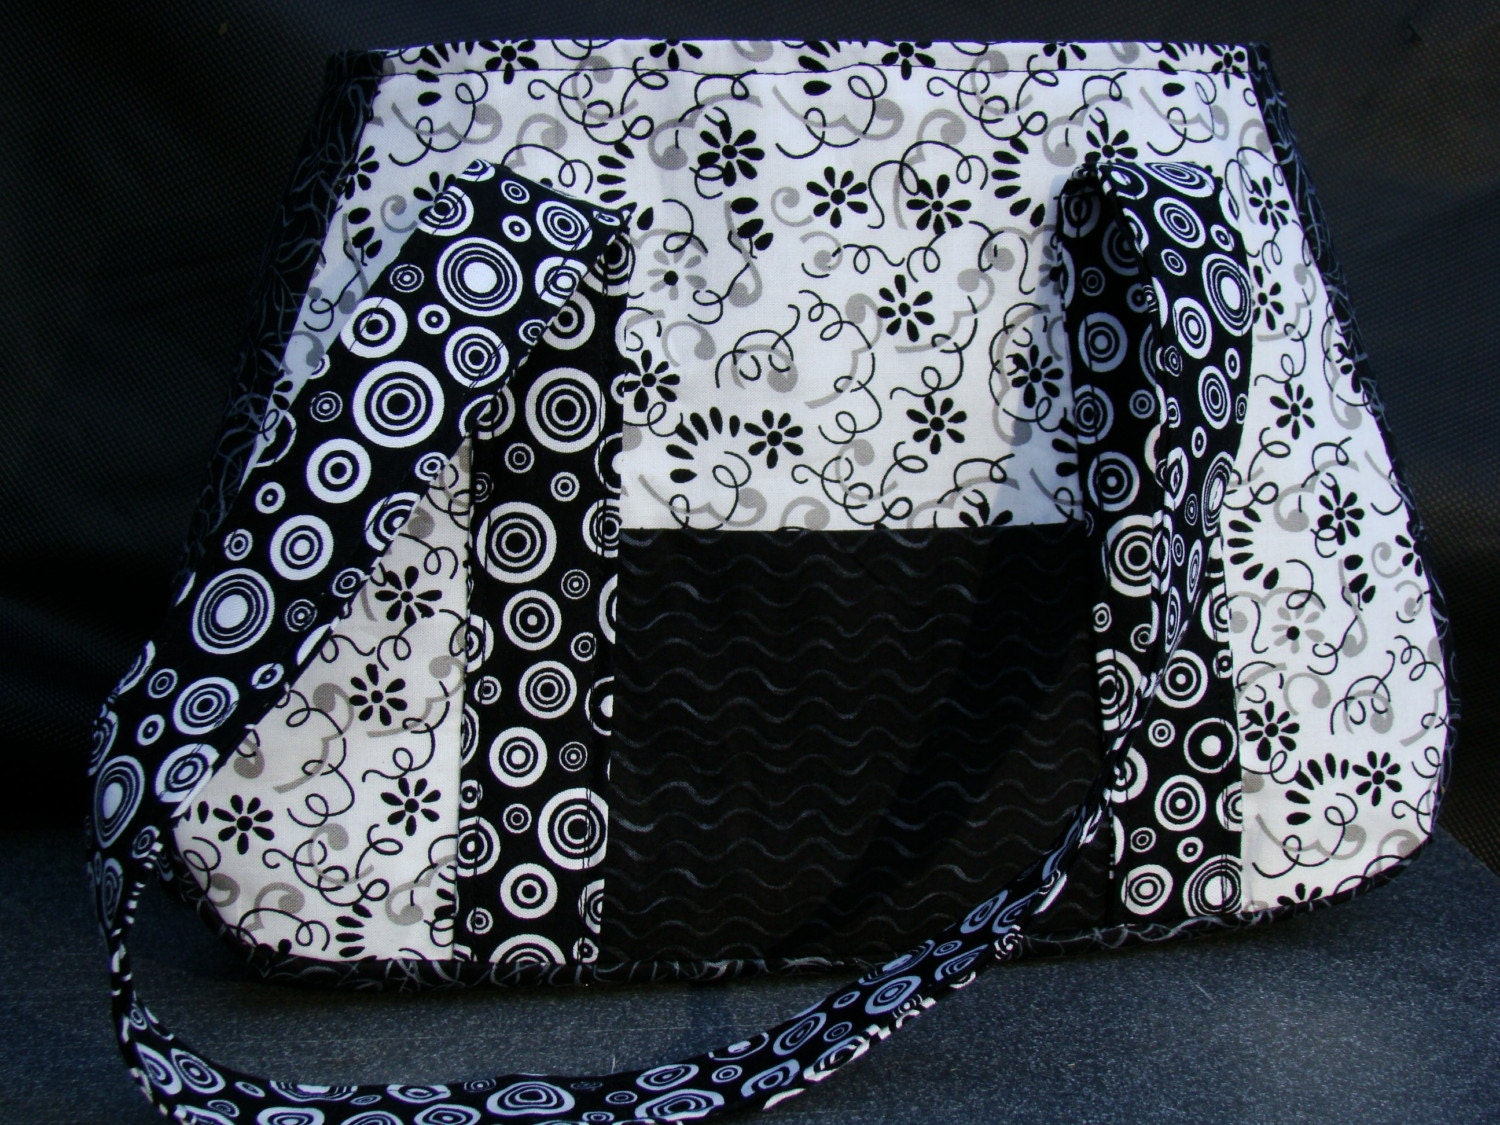 Black and White Small Lauren Purse